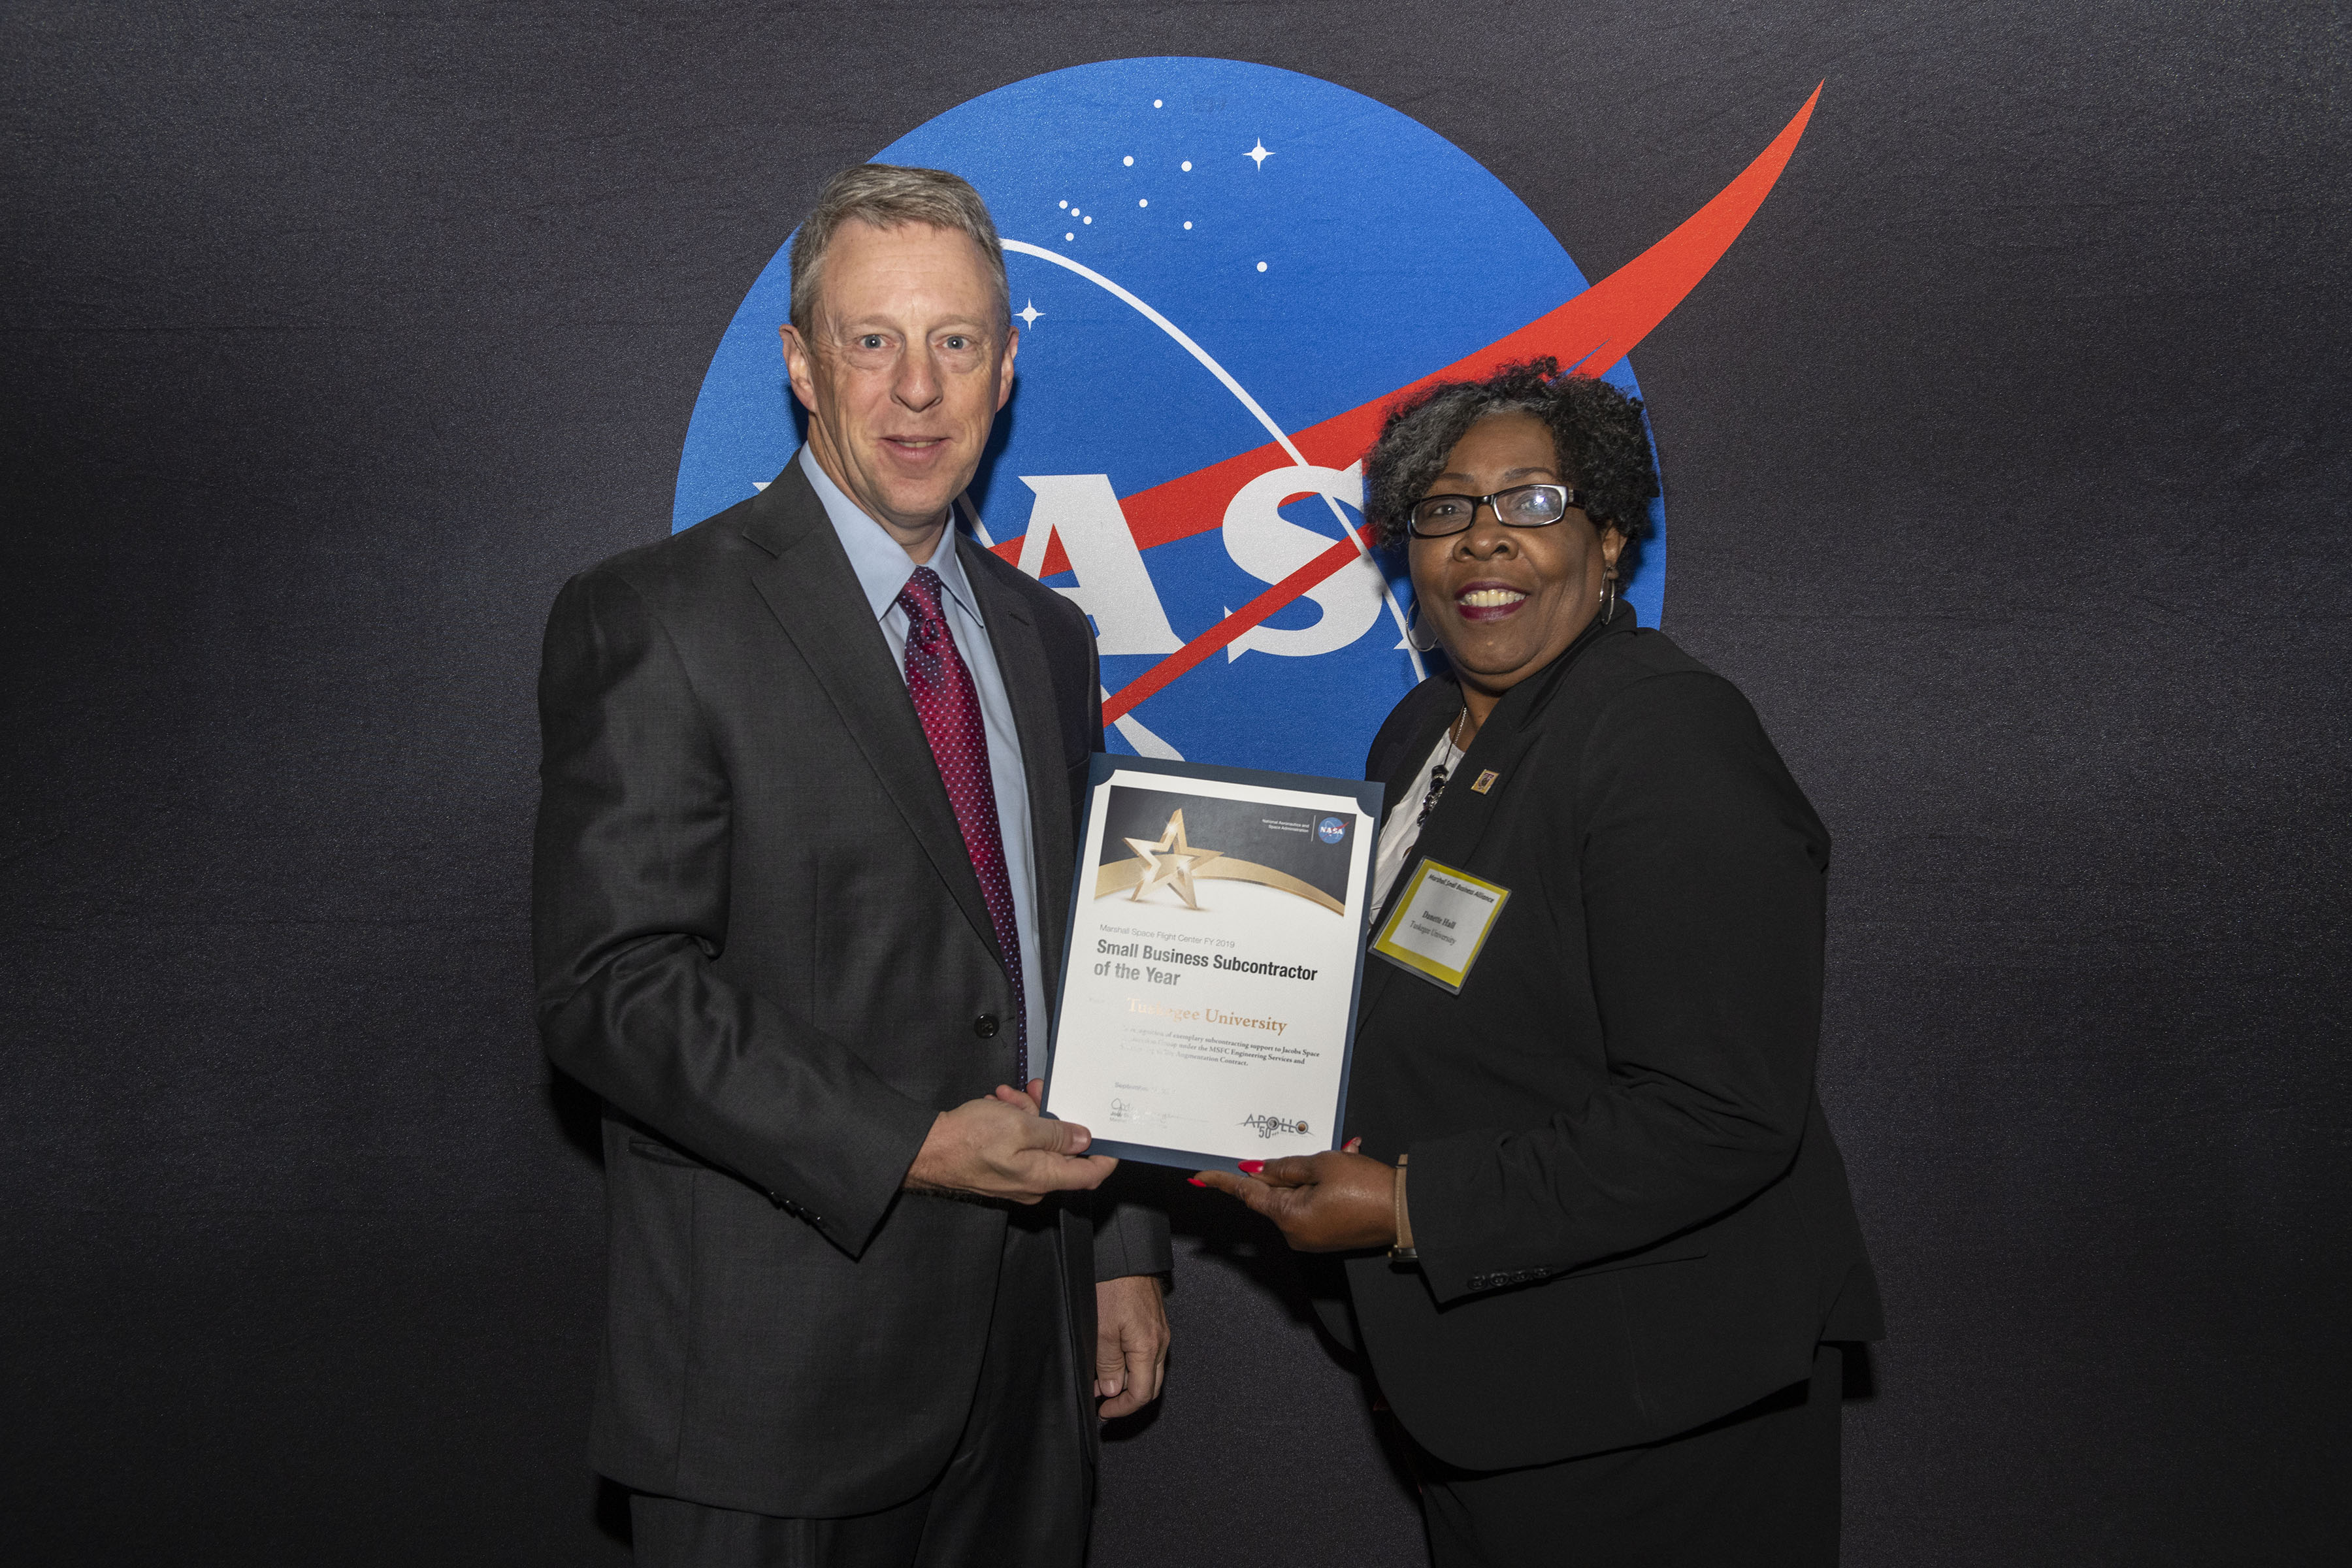 Danette Hall received an award from NASA's Todd Pospisil